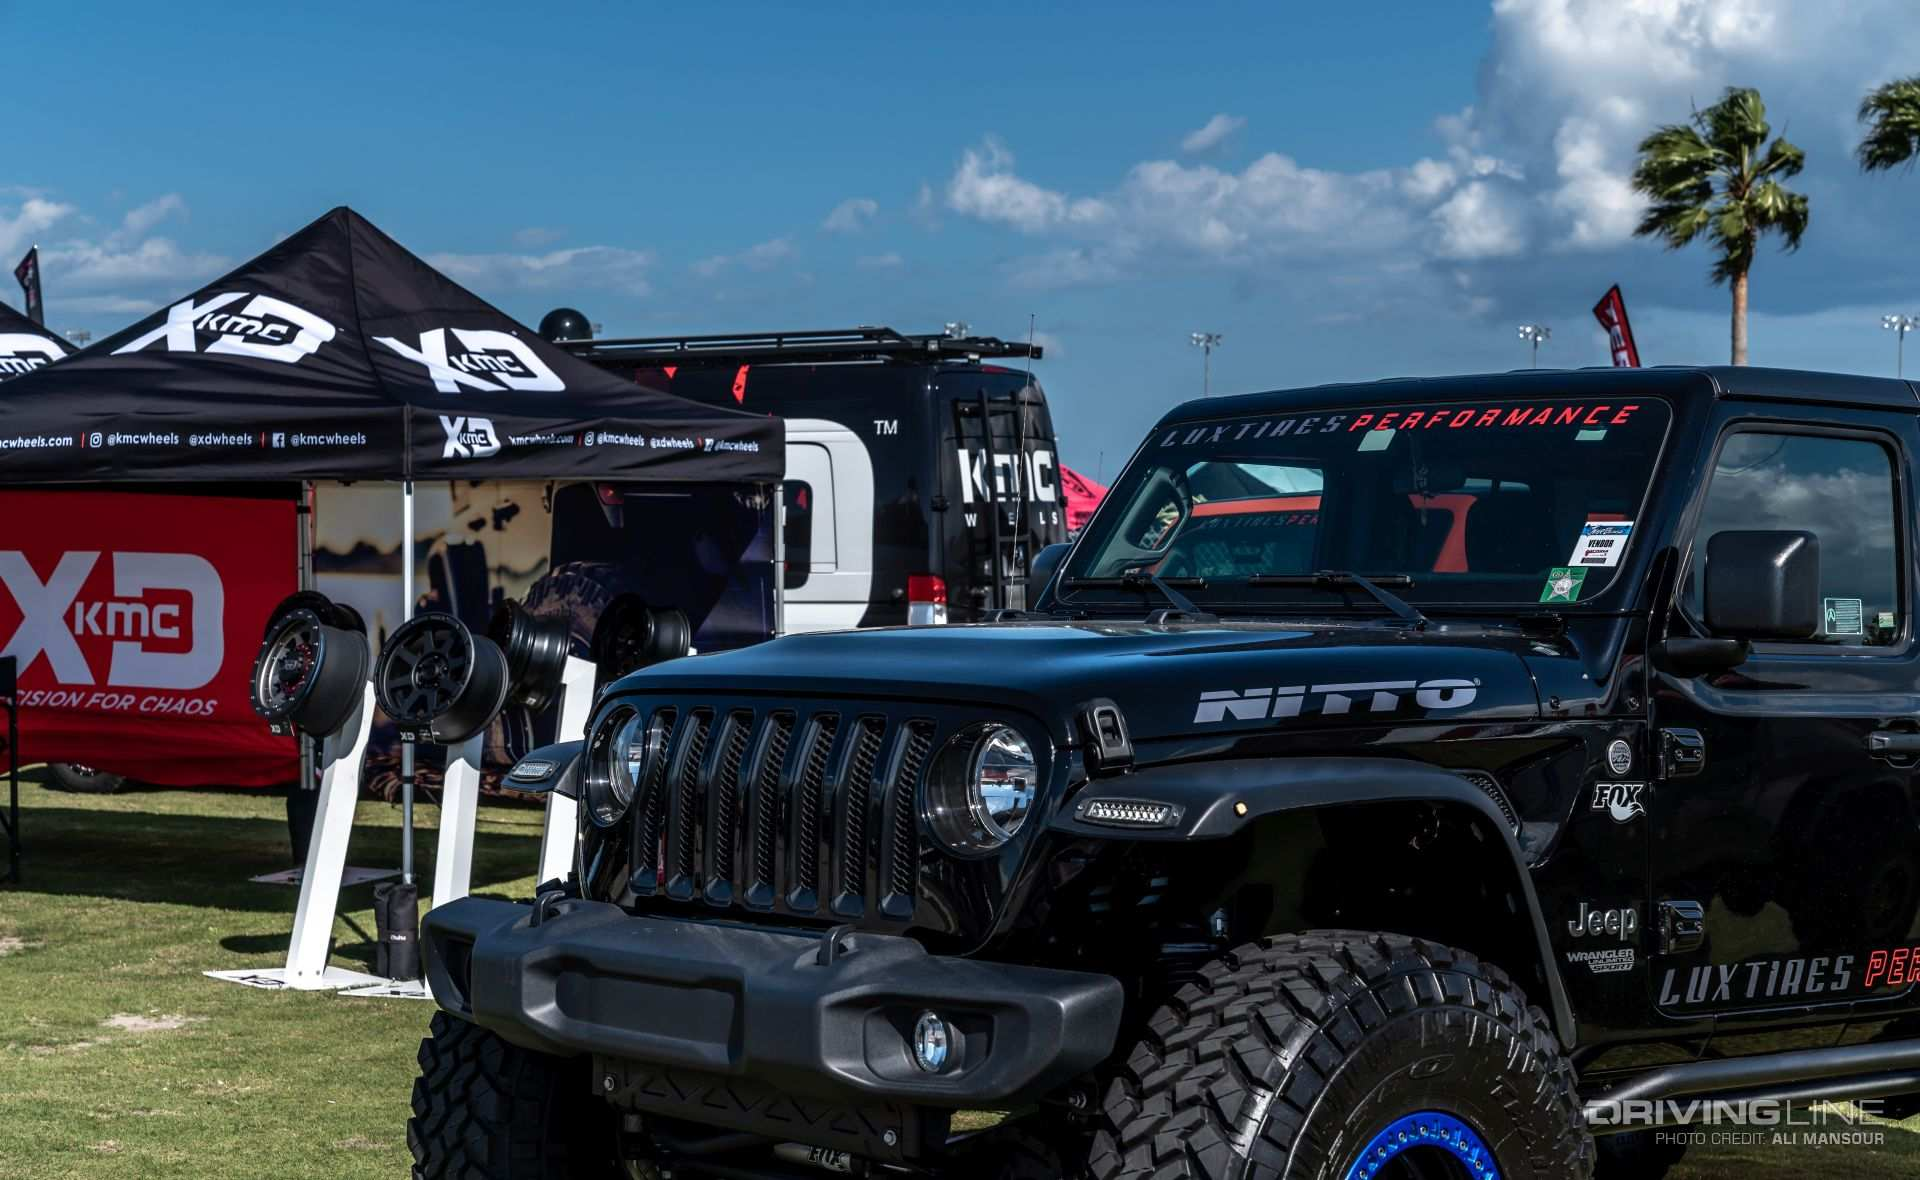 89 Concept of Jeep Beach Daytona 2020 Rumors with Jeep Beach Daytona 2020